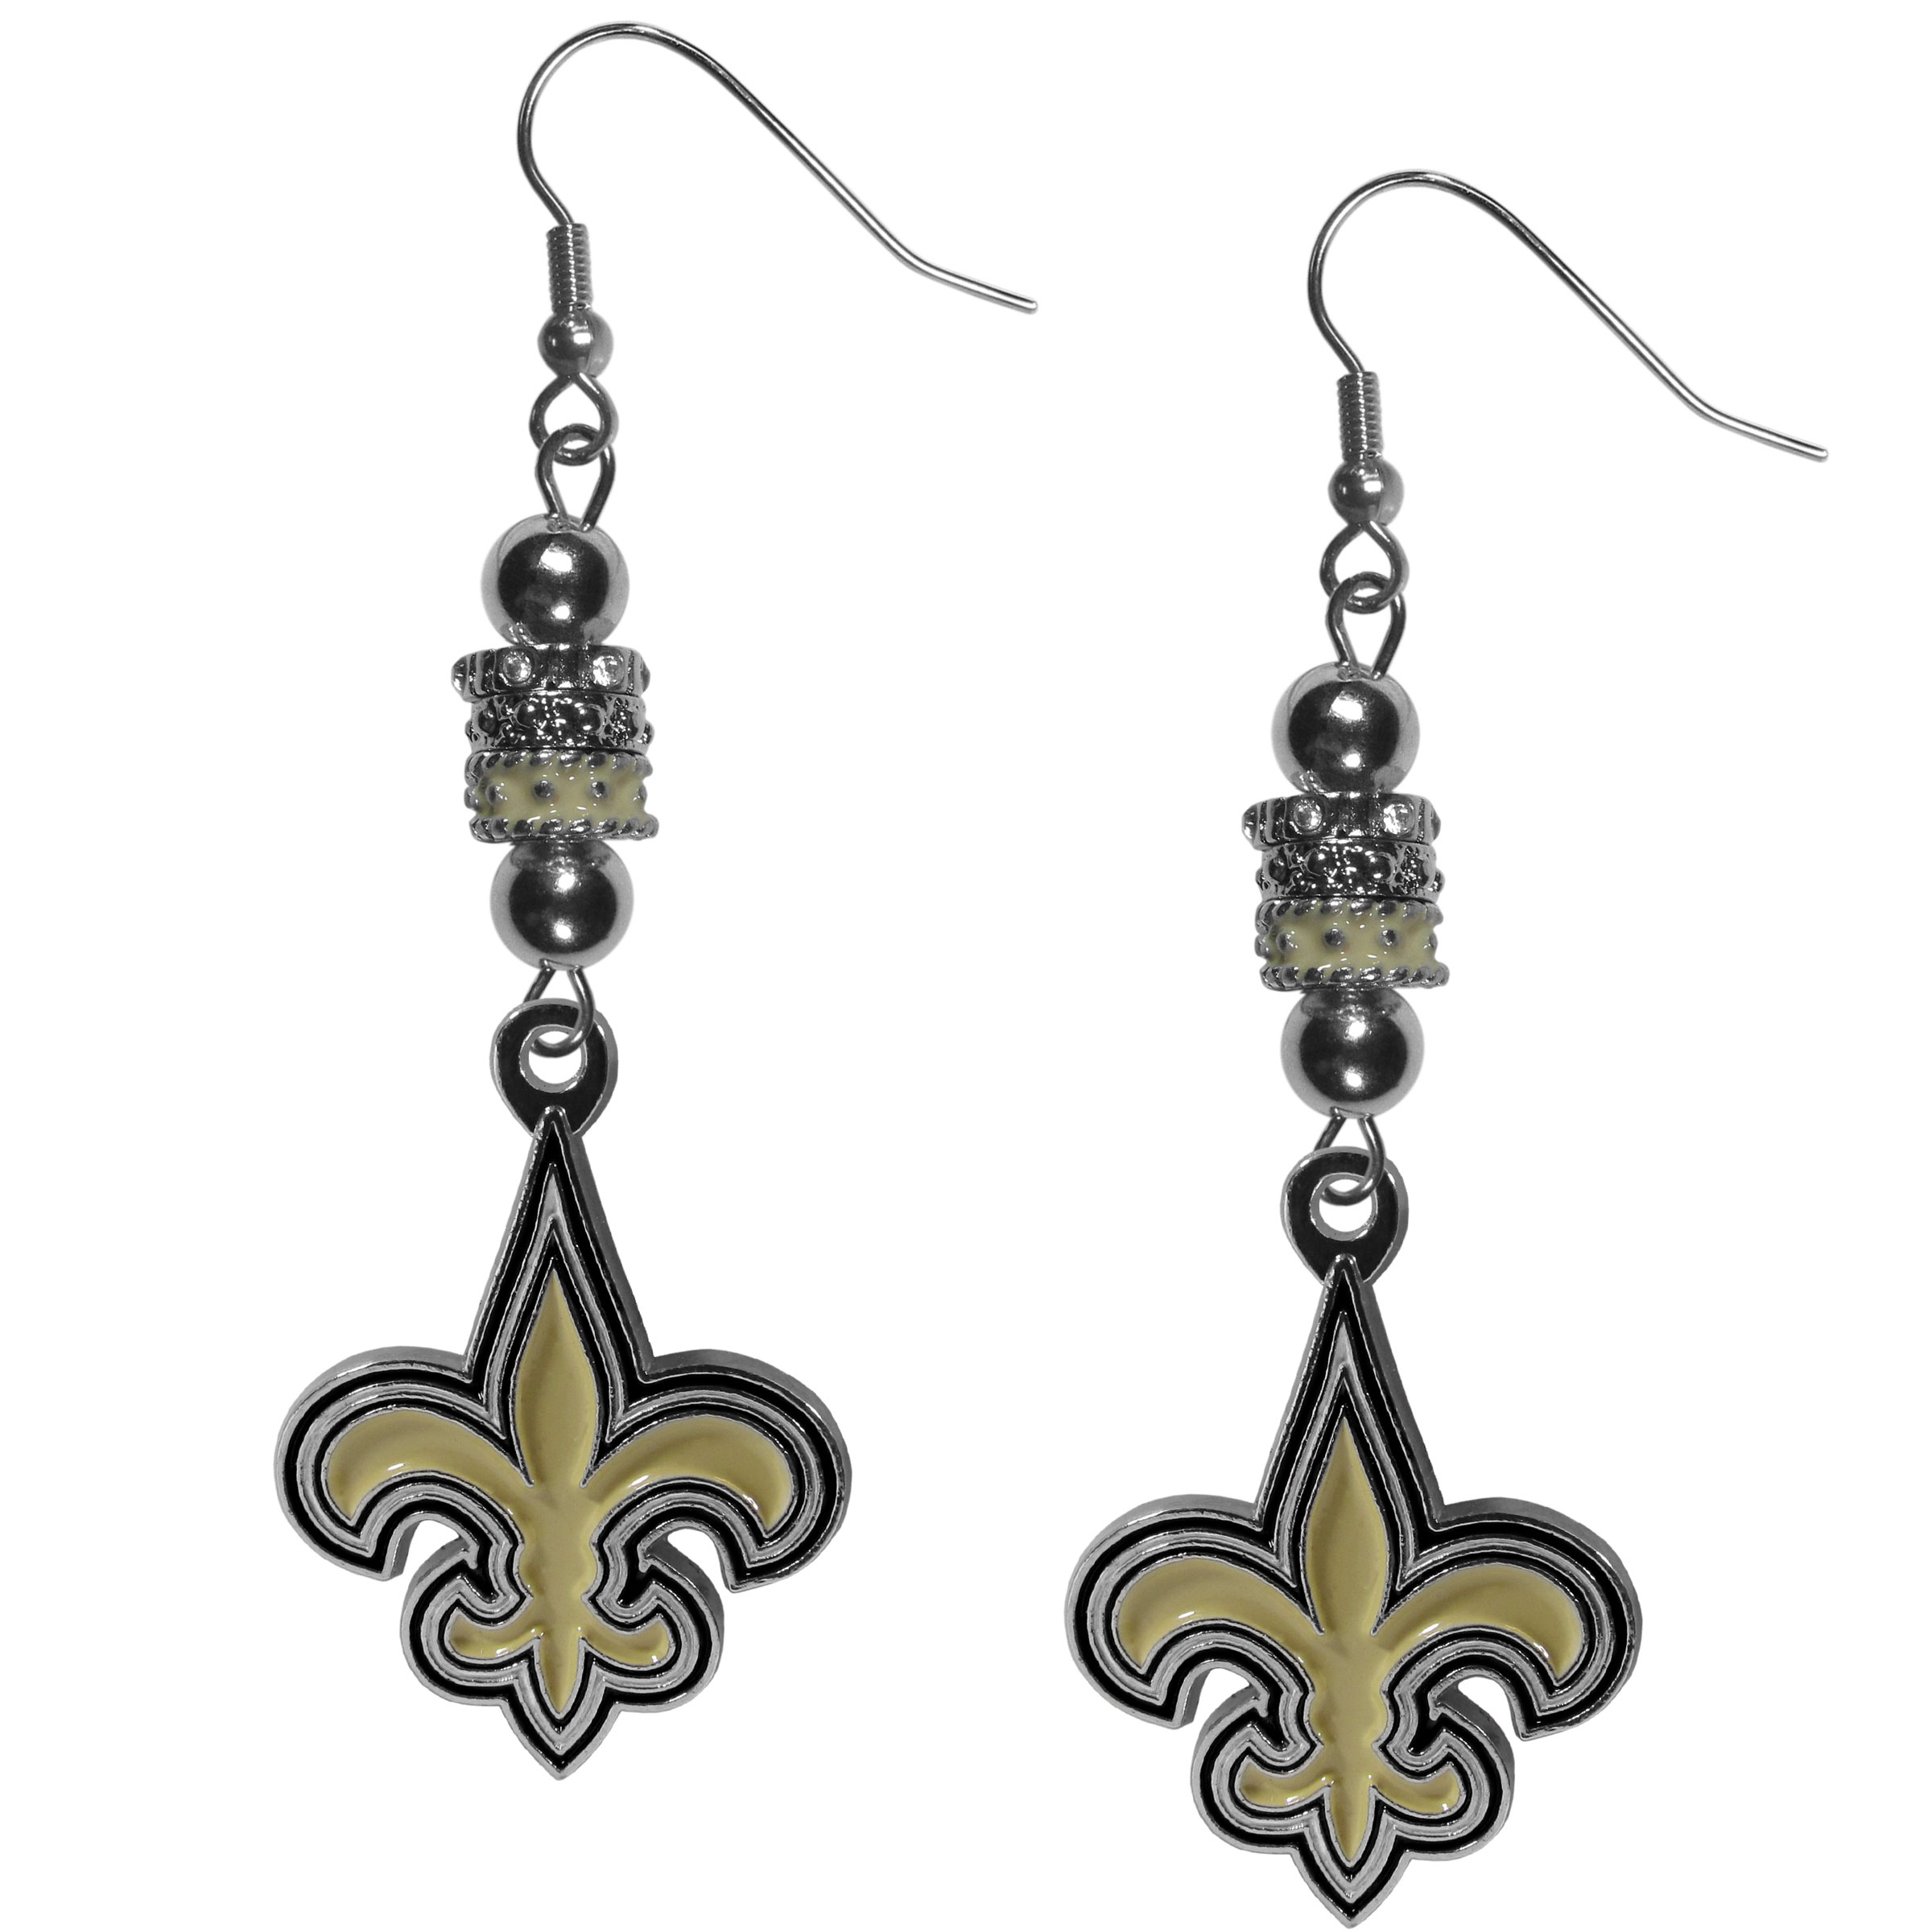 New Orleans Saints Euro Bead Earrings - These beautiful euro style earrings feature 3 euro beads and a detailed New Orleans Saints charm on hypoallergenic fishhook posts.